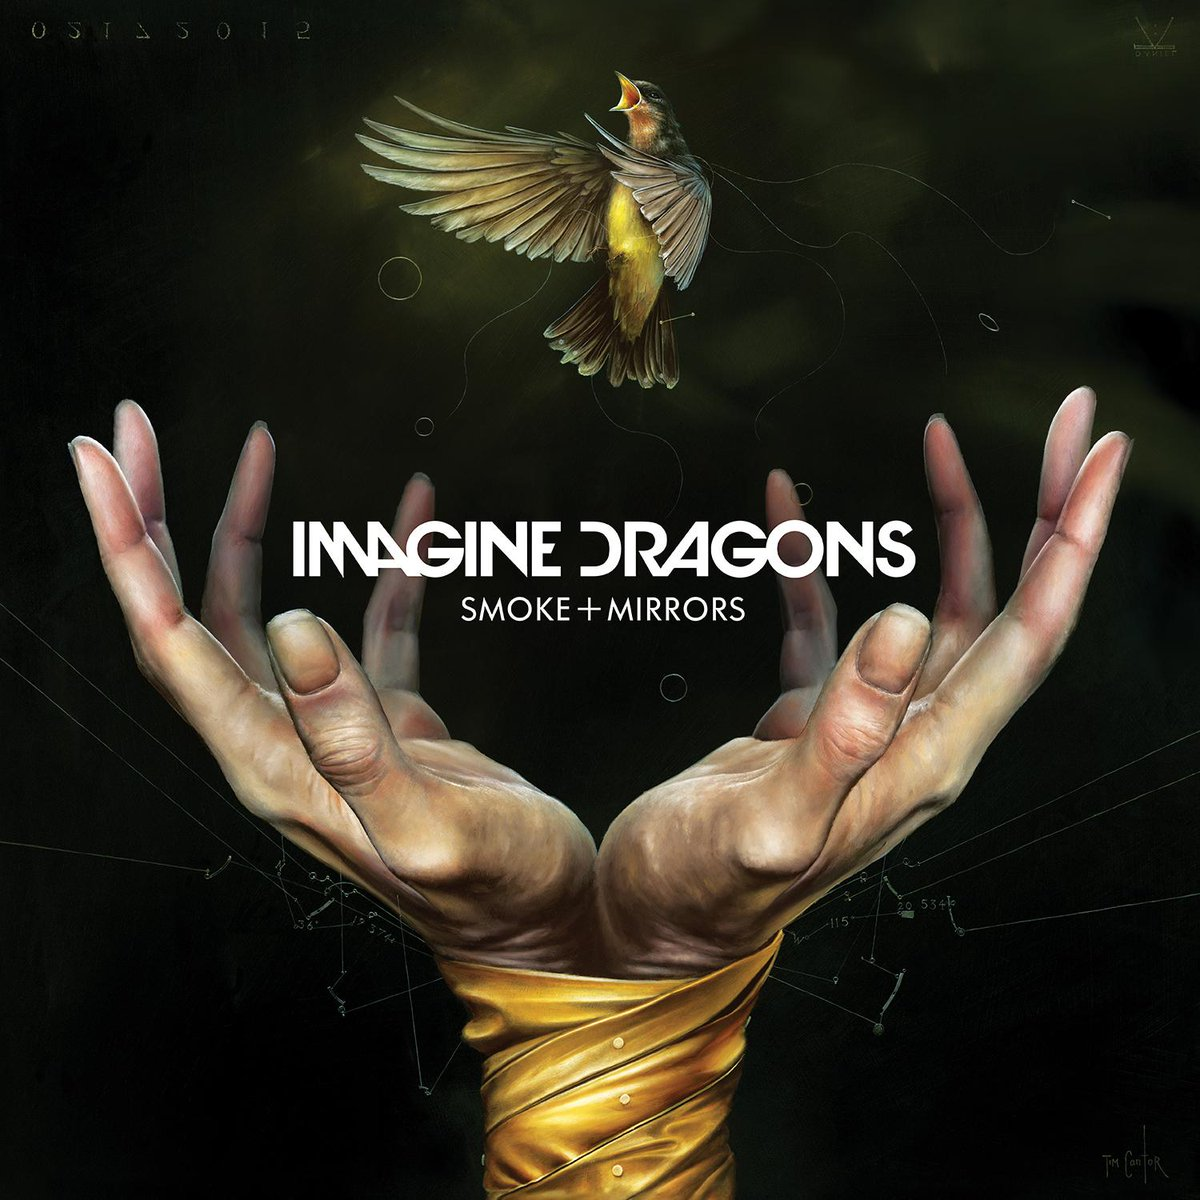 We're sending you to Vegas to hear @Imaginedragons new album Smoke + Mirrors http://t.co/VLrG614bzt http://t.co/PA1DBMUyMd